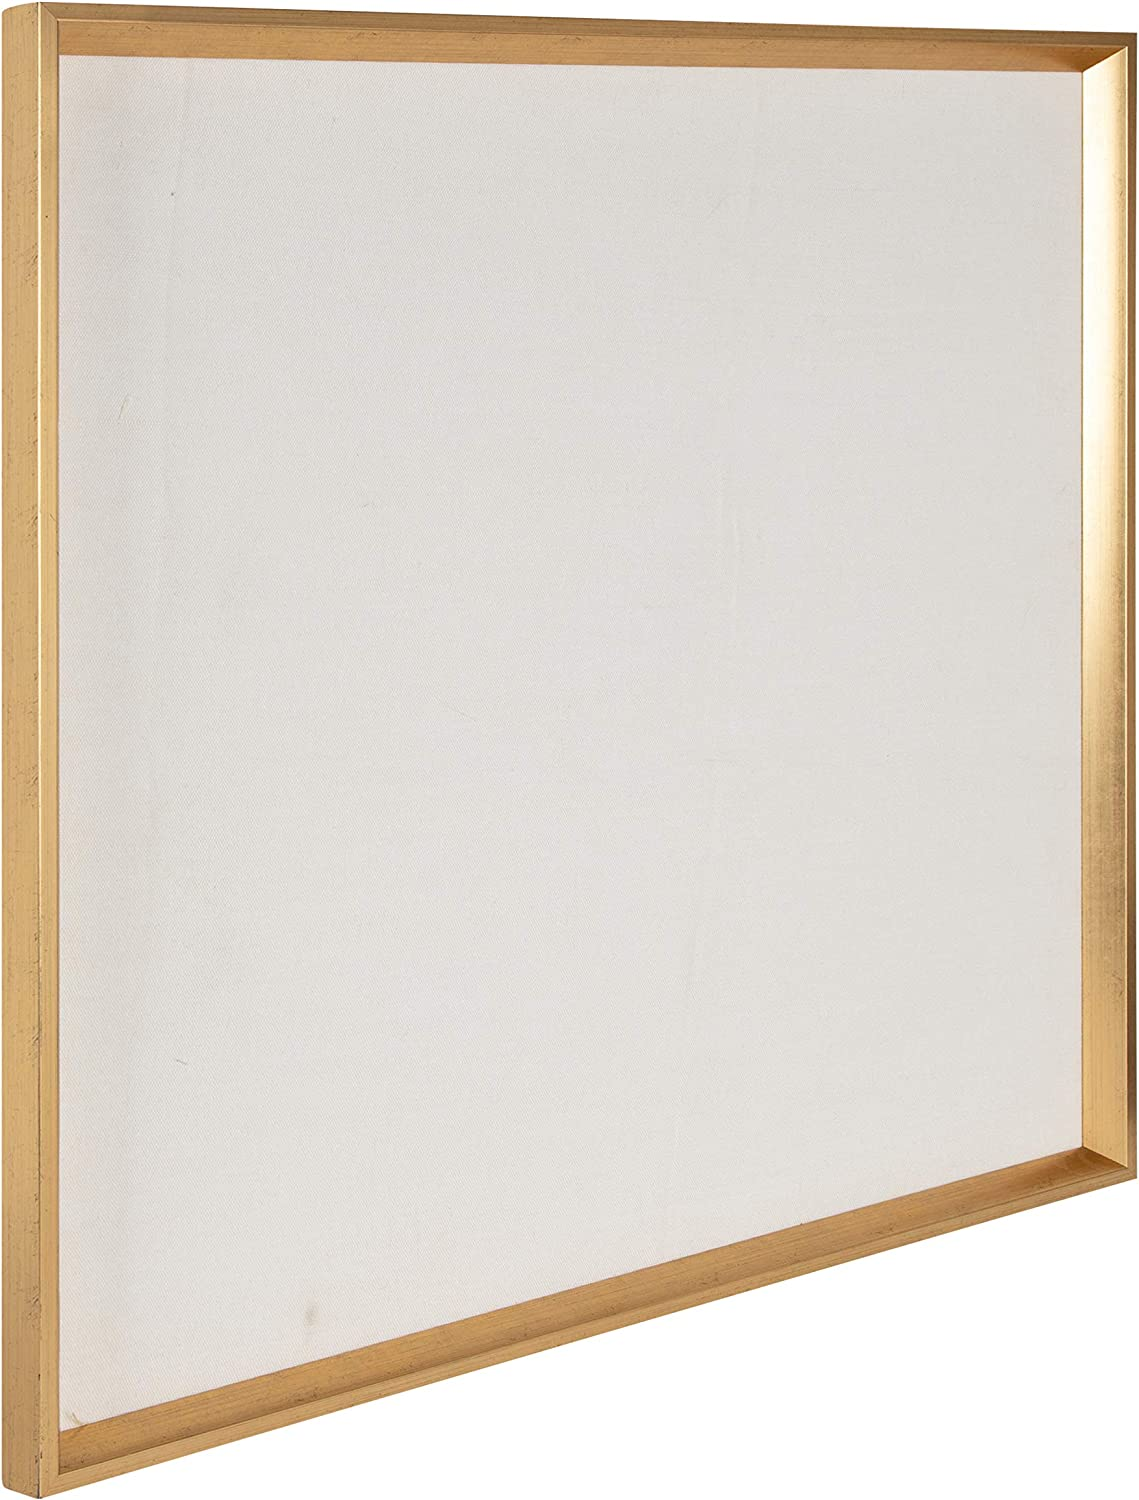 Kate and Laurel Calter Popularity Framed Fabric lowest price Linen 29.5x29.5 Pinboard